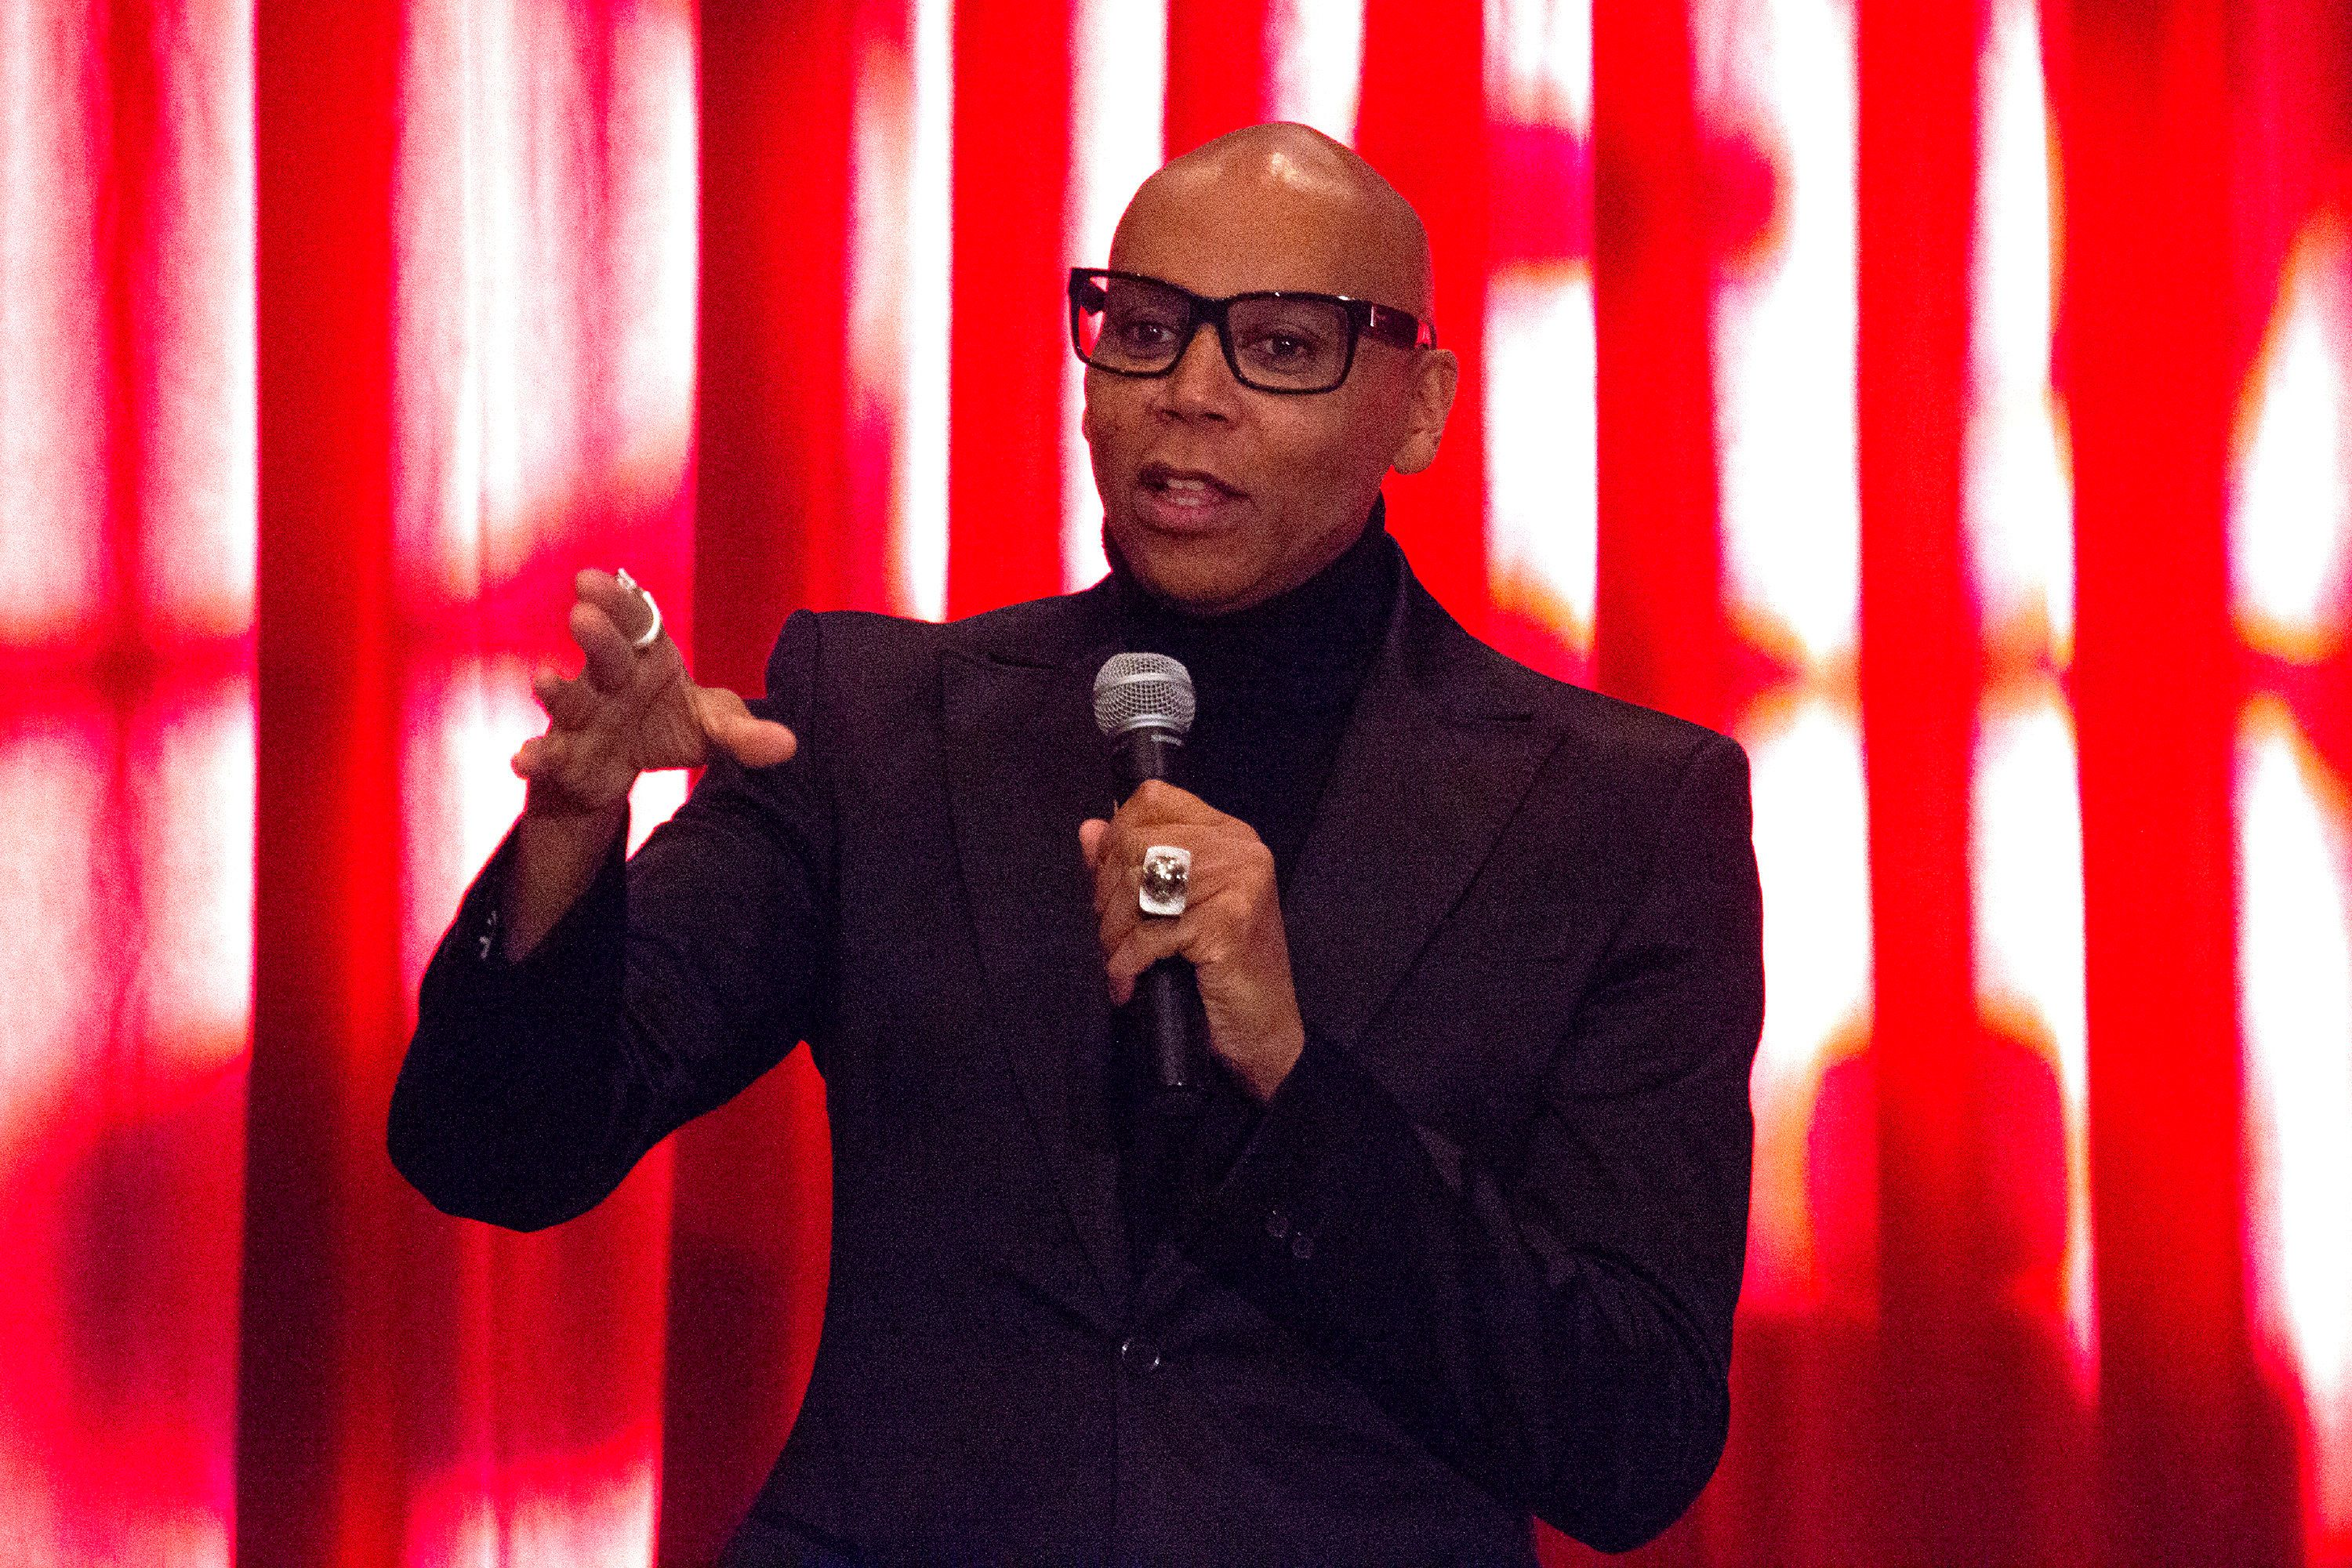 LOS ANGELES, CA - MAY 13:  RuPaul onstage during the 4th Annual RuPaul's DragCon at Los Angeles Convention Center on May 13, 2018 in Los Angeles, California.  (Photo by Santiago Felipe/FilmMagic)